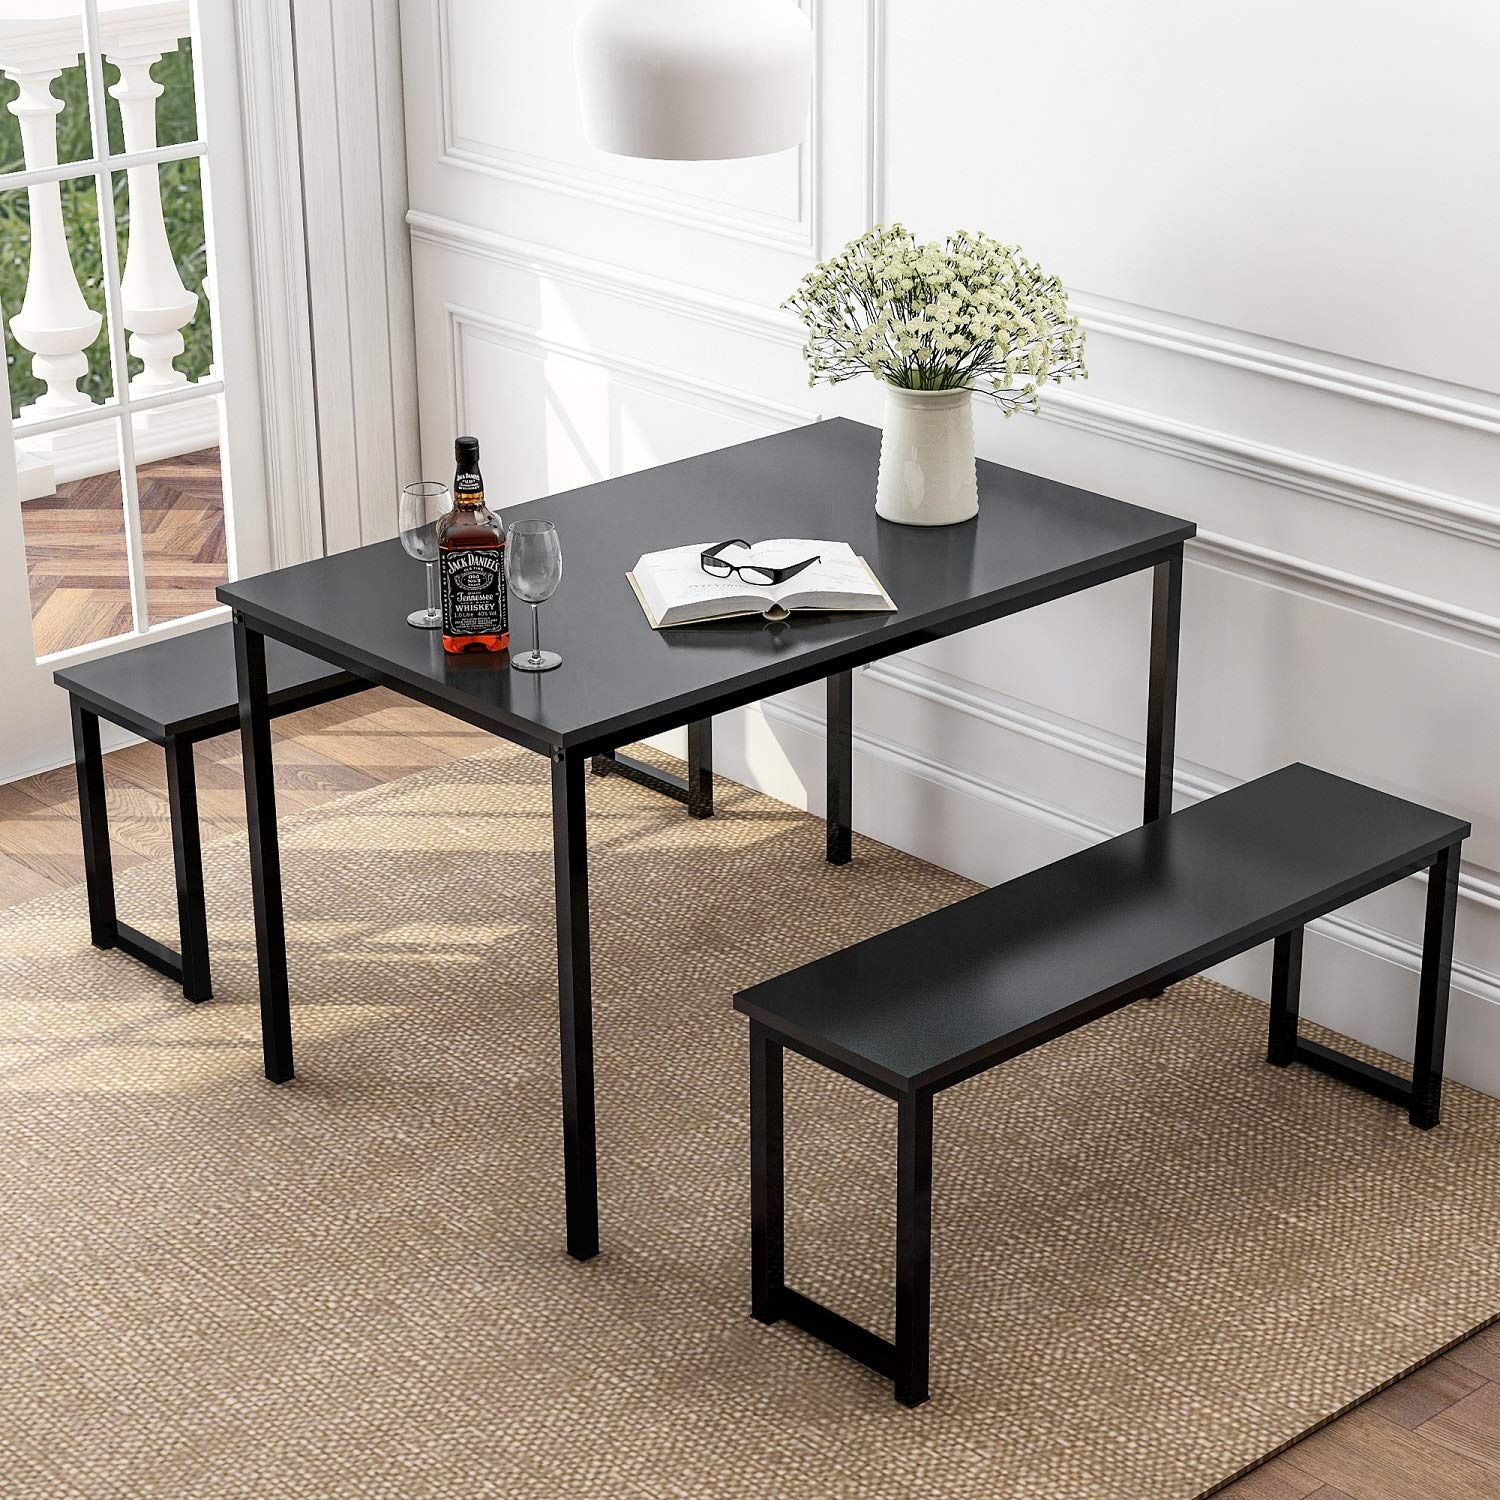 Rhomtree 3 Pieces Dining Set Table with 2 Benches Kitchen Dining Room Furniture Modern Style Wood Table Top with Metal Frame (Black) by Rhomtree